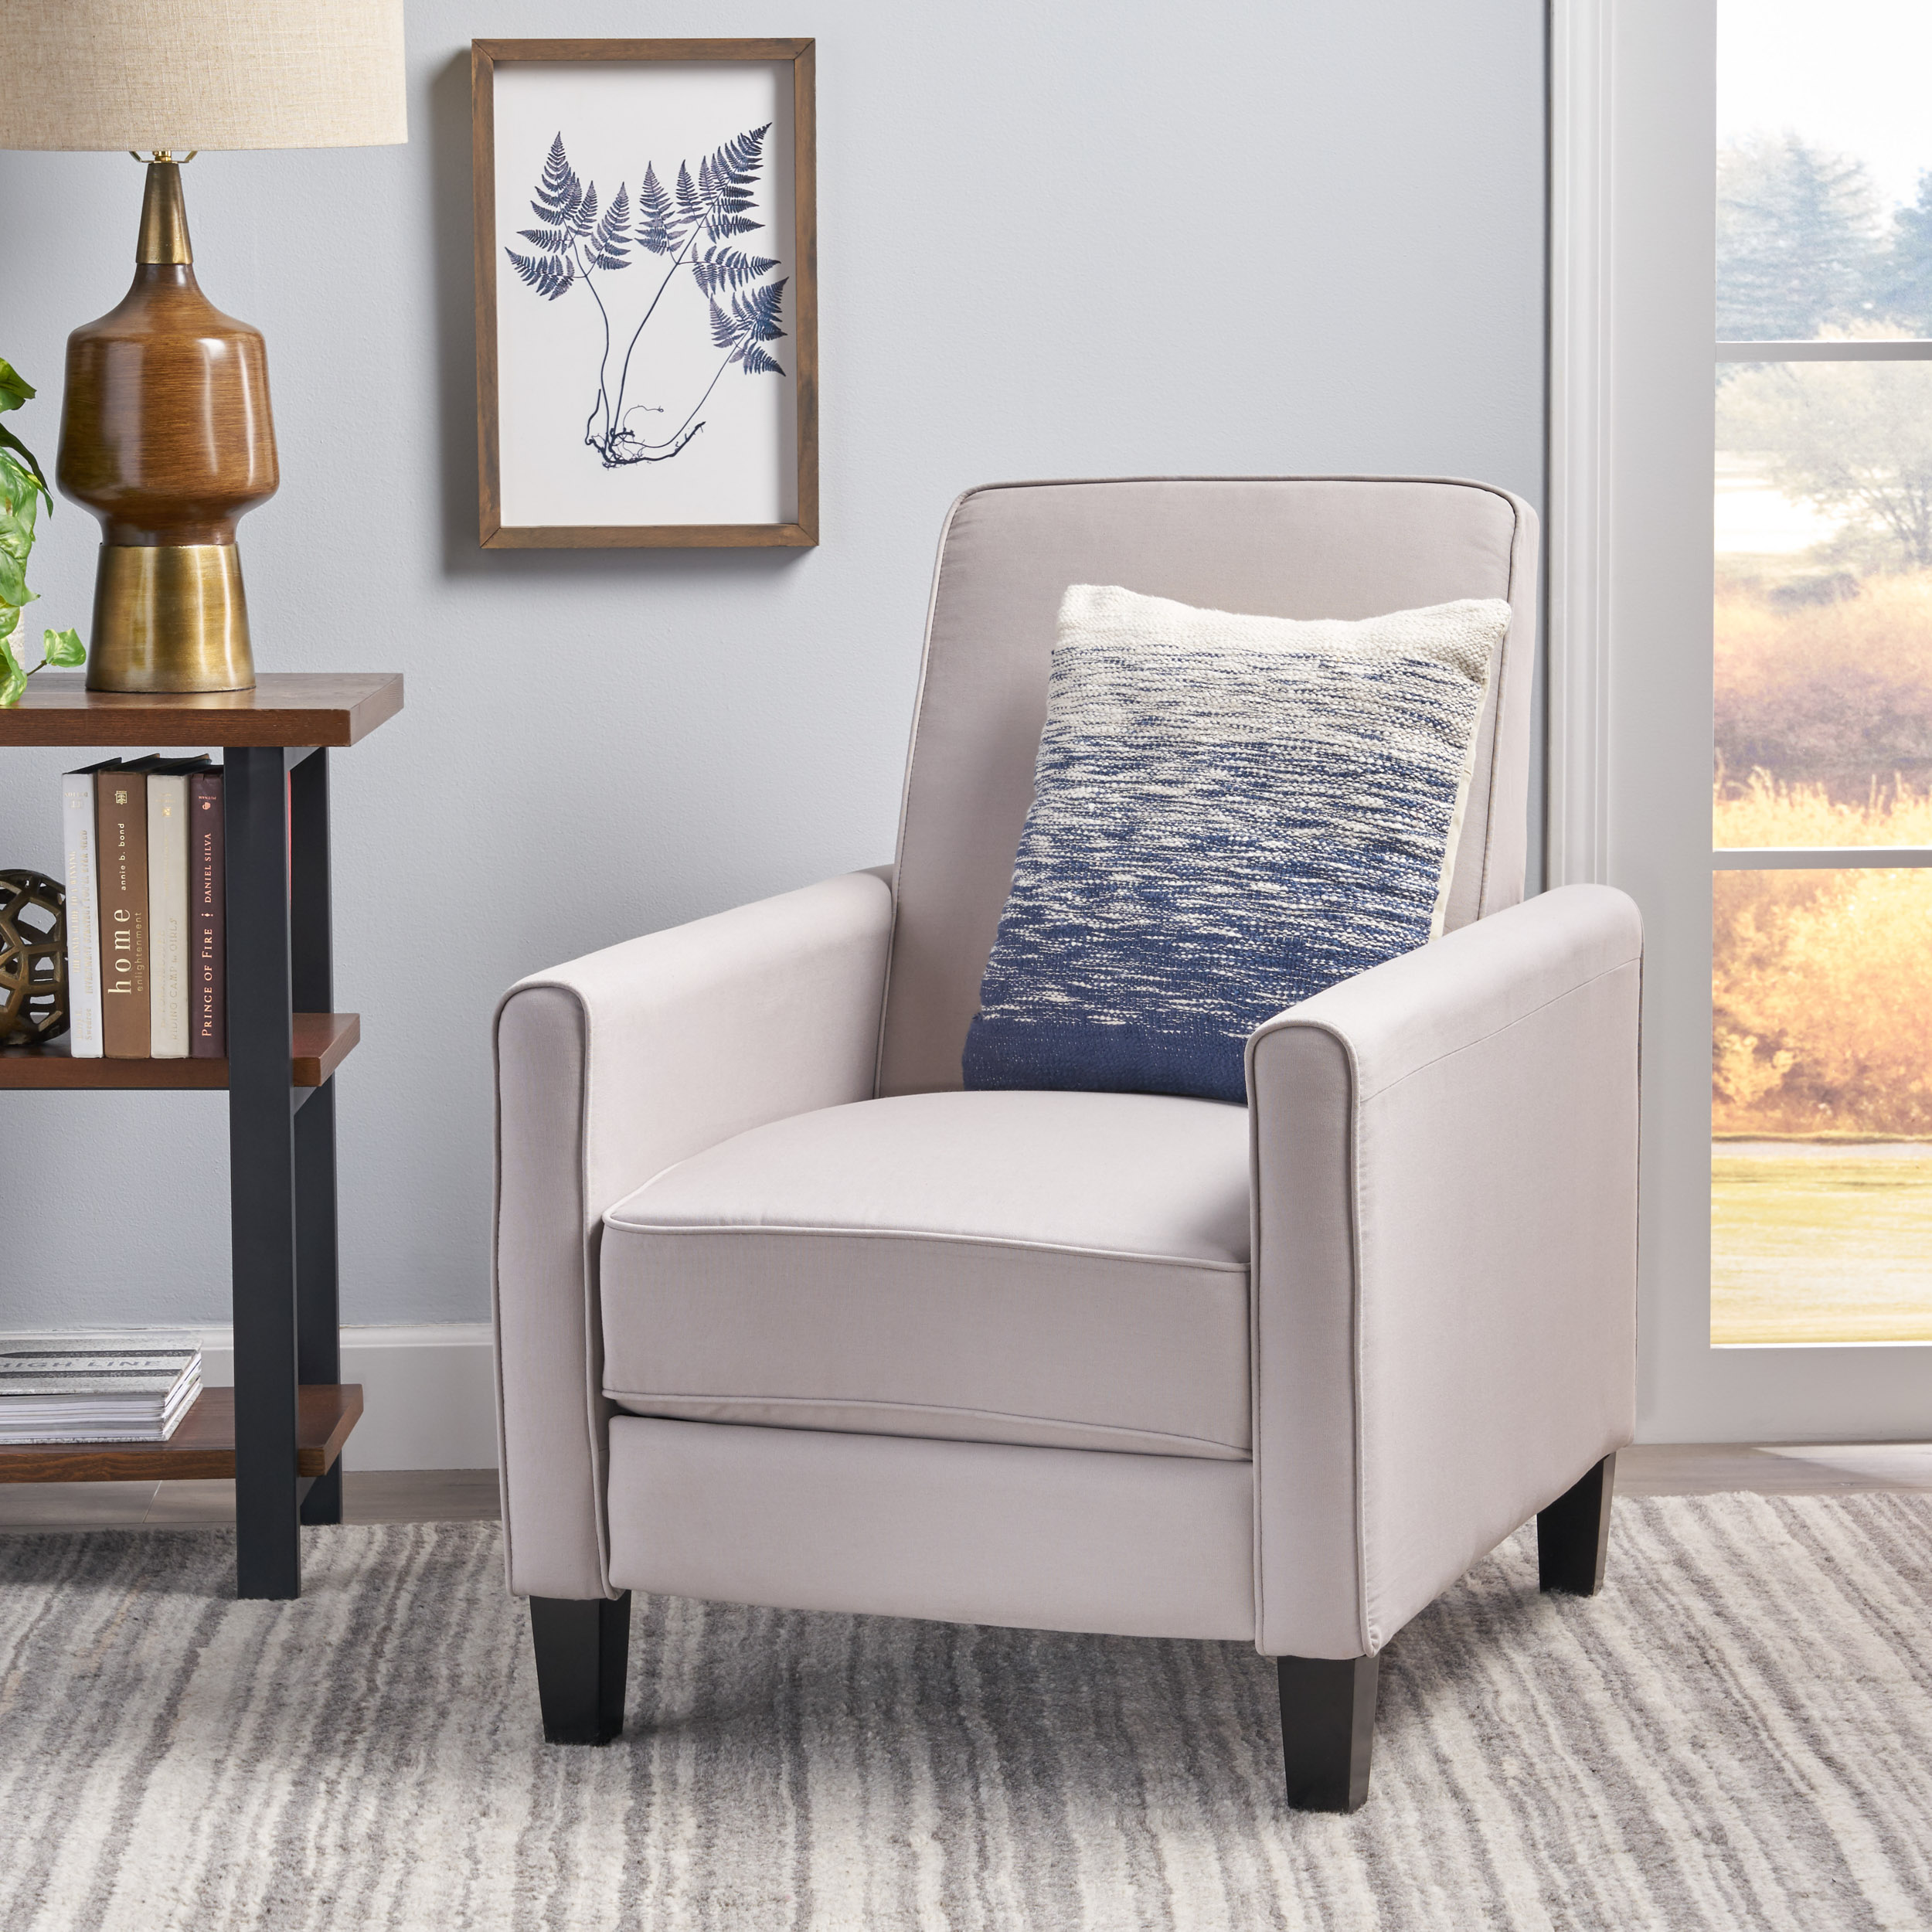 Noble House Bryce Grey Recliner Club Chair - Walmart.com ...